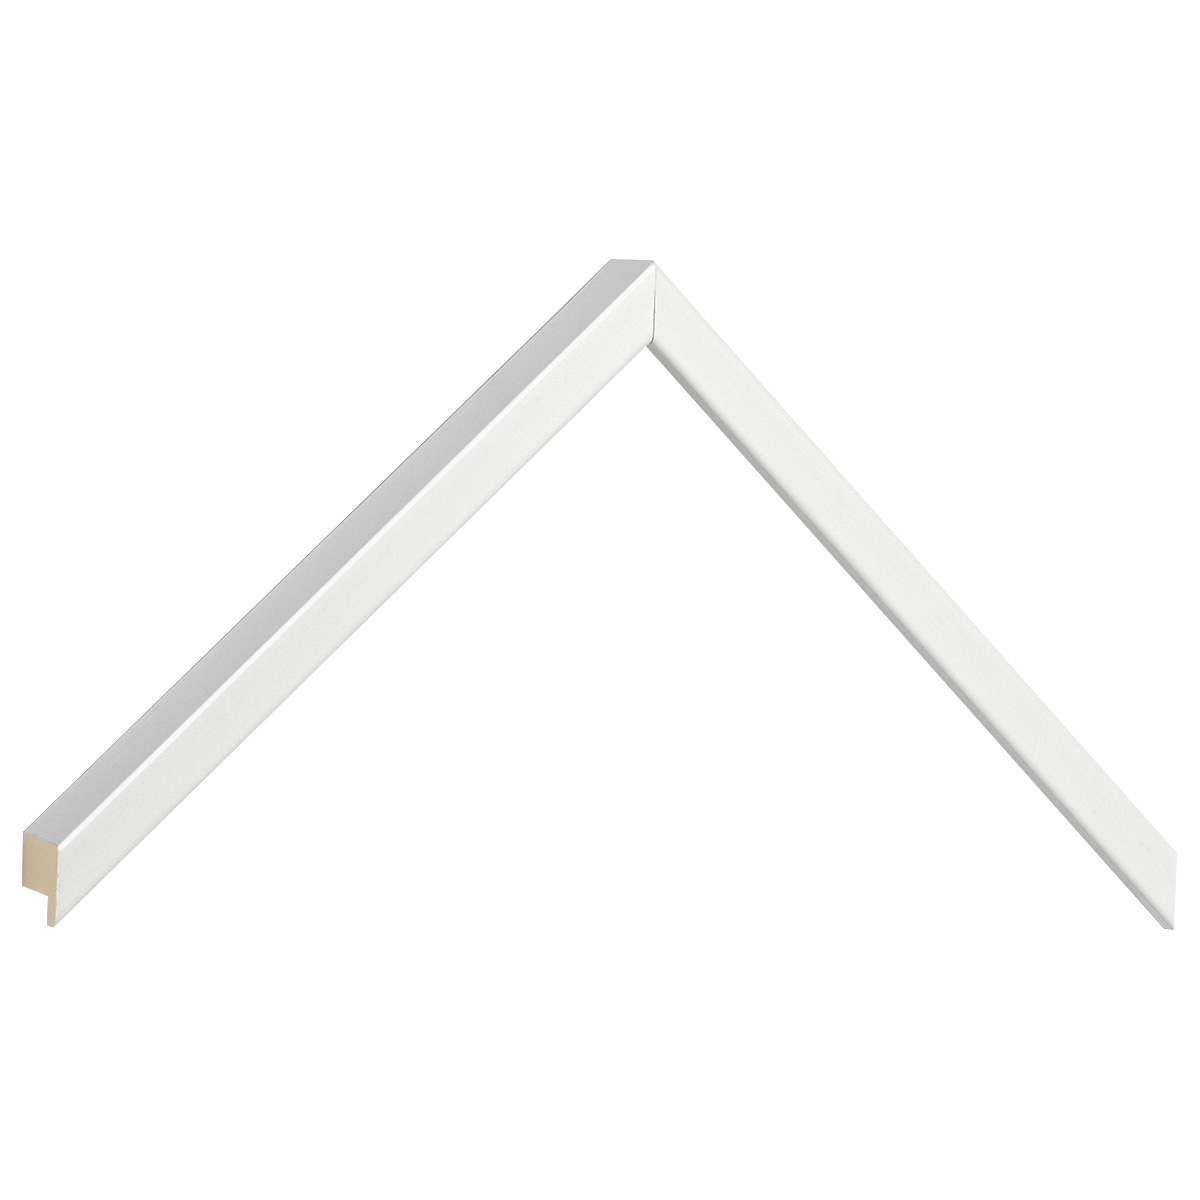 Moulding ayous, width 10mm, height 25mm - bright white